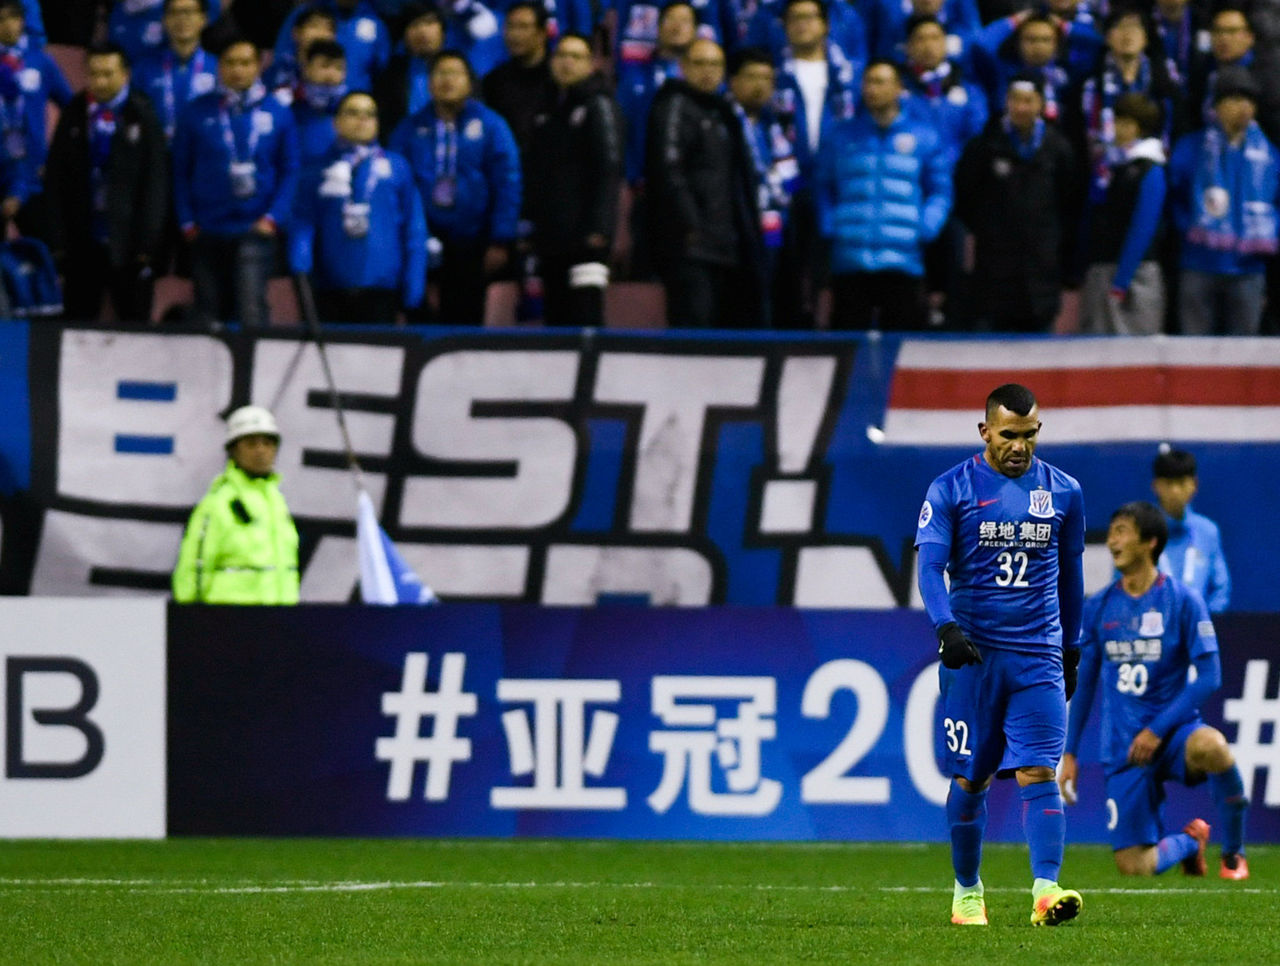 Cropped 2017 02 09t050657z 1415654524 rc191a693cd0 rtrmadp 3 soccer asia shenhua